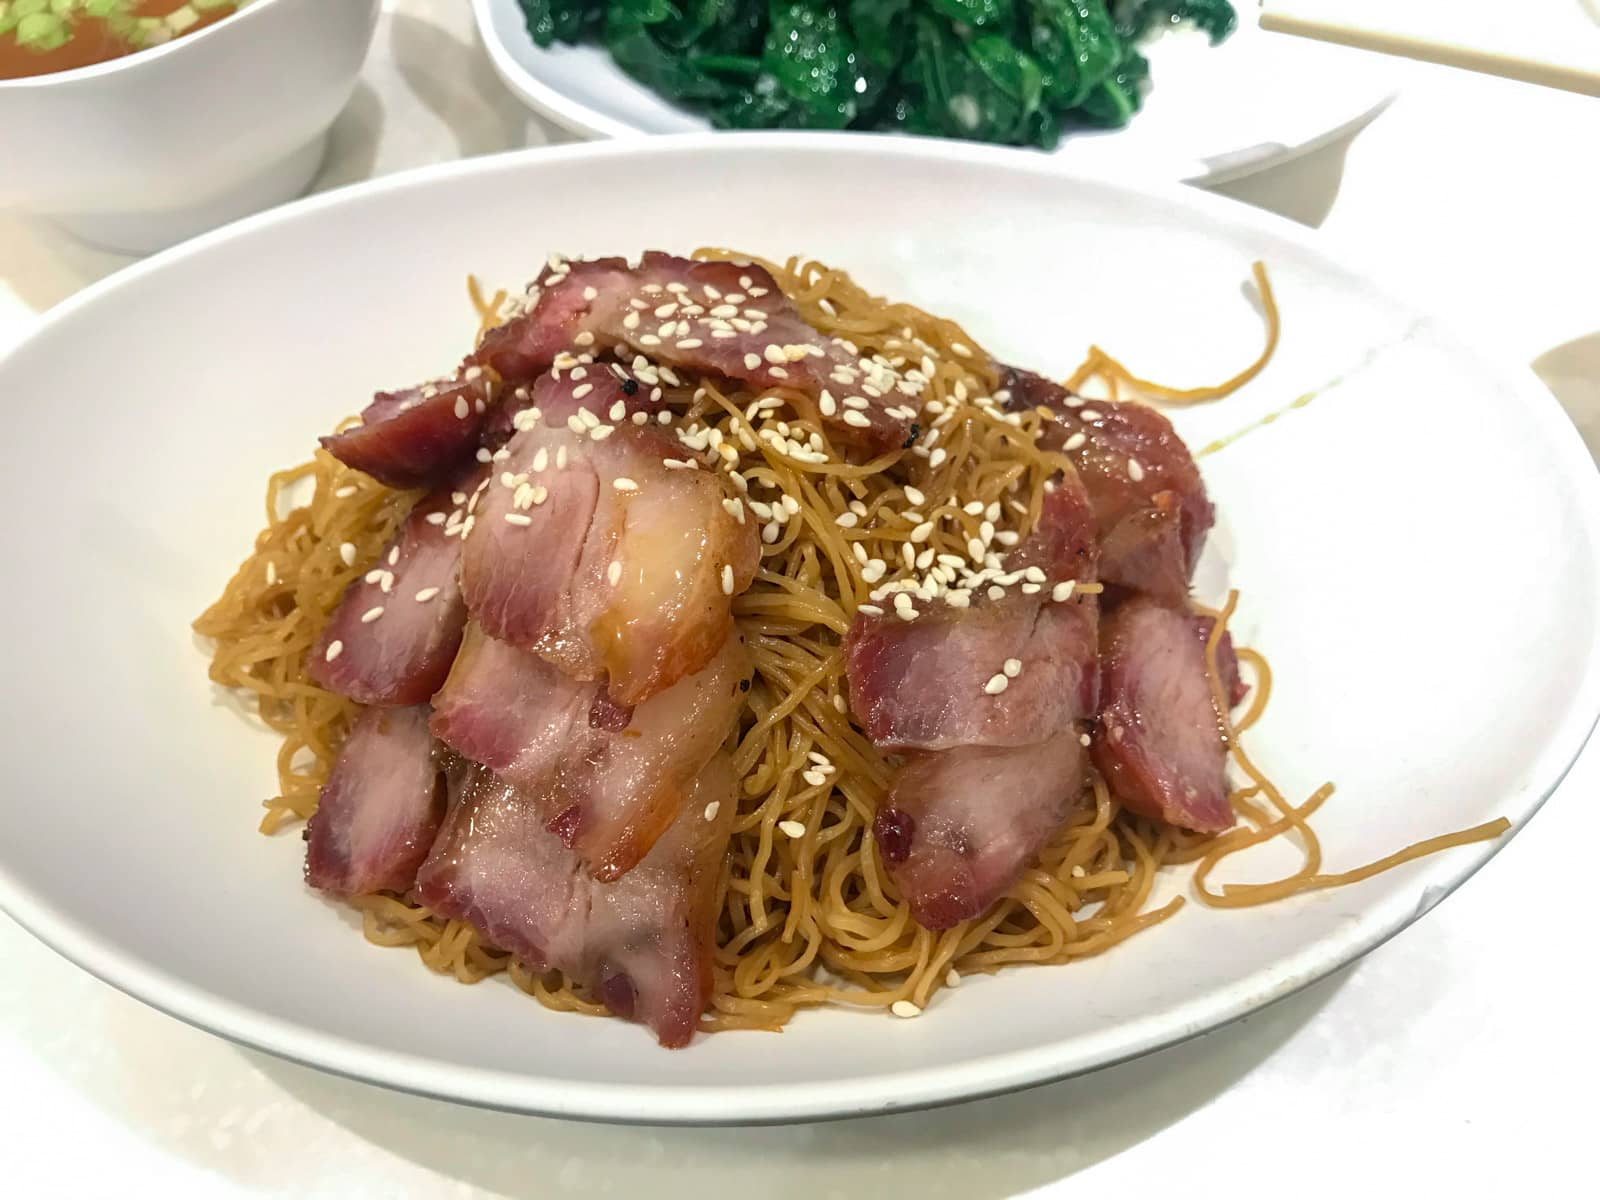 A white bowl of stir-fried noodles served with slices of roast pork, topped with sesame seeds.